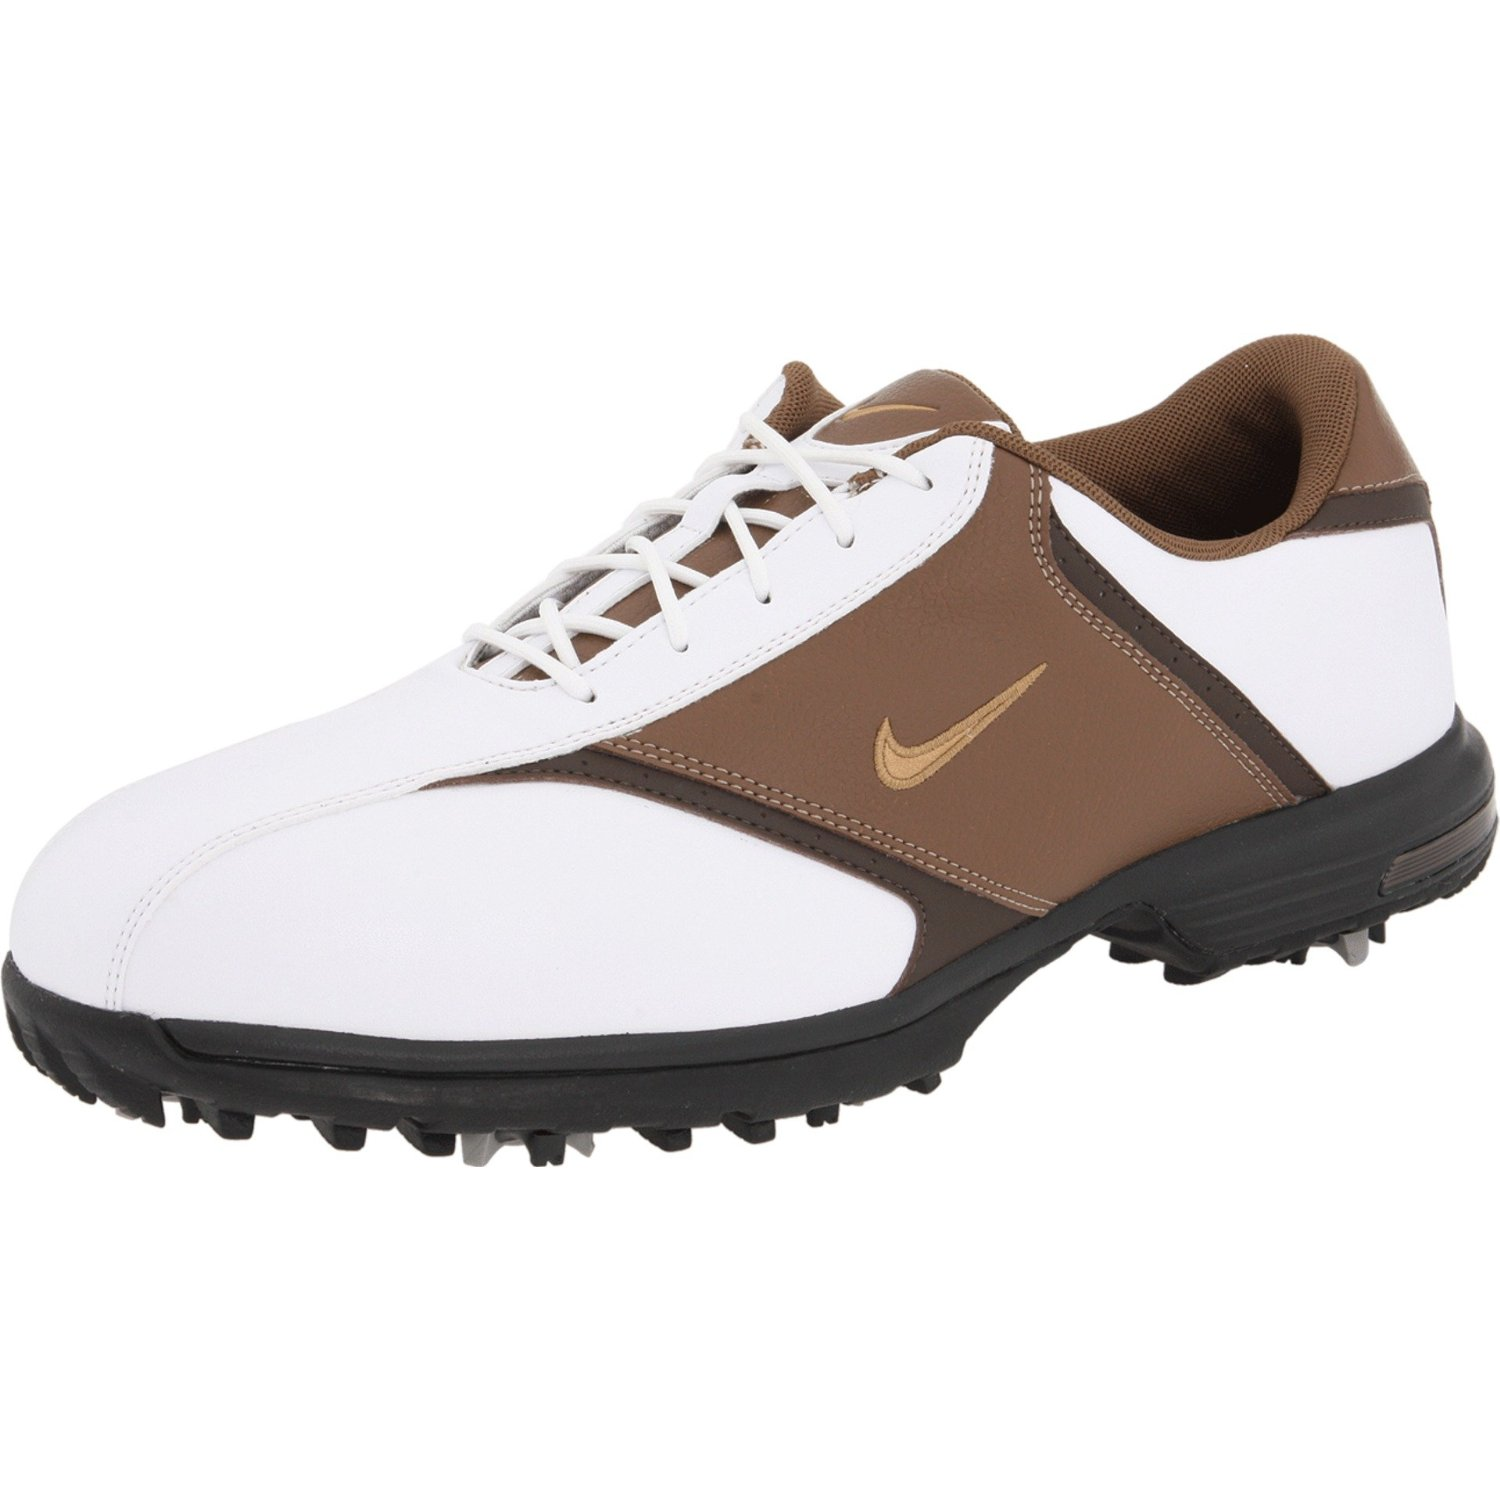 nike nike golf mens nike heritage golf shoe in brown for